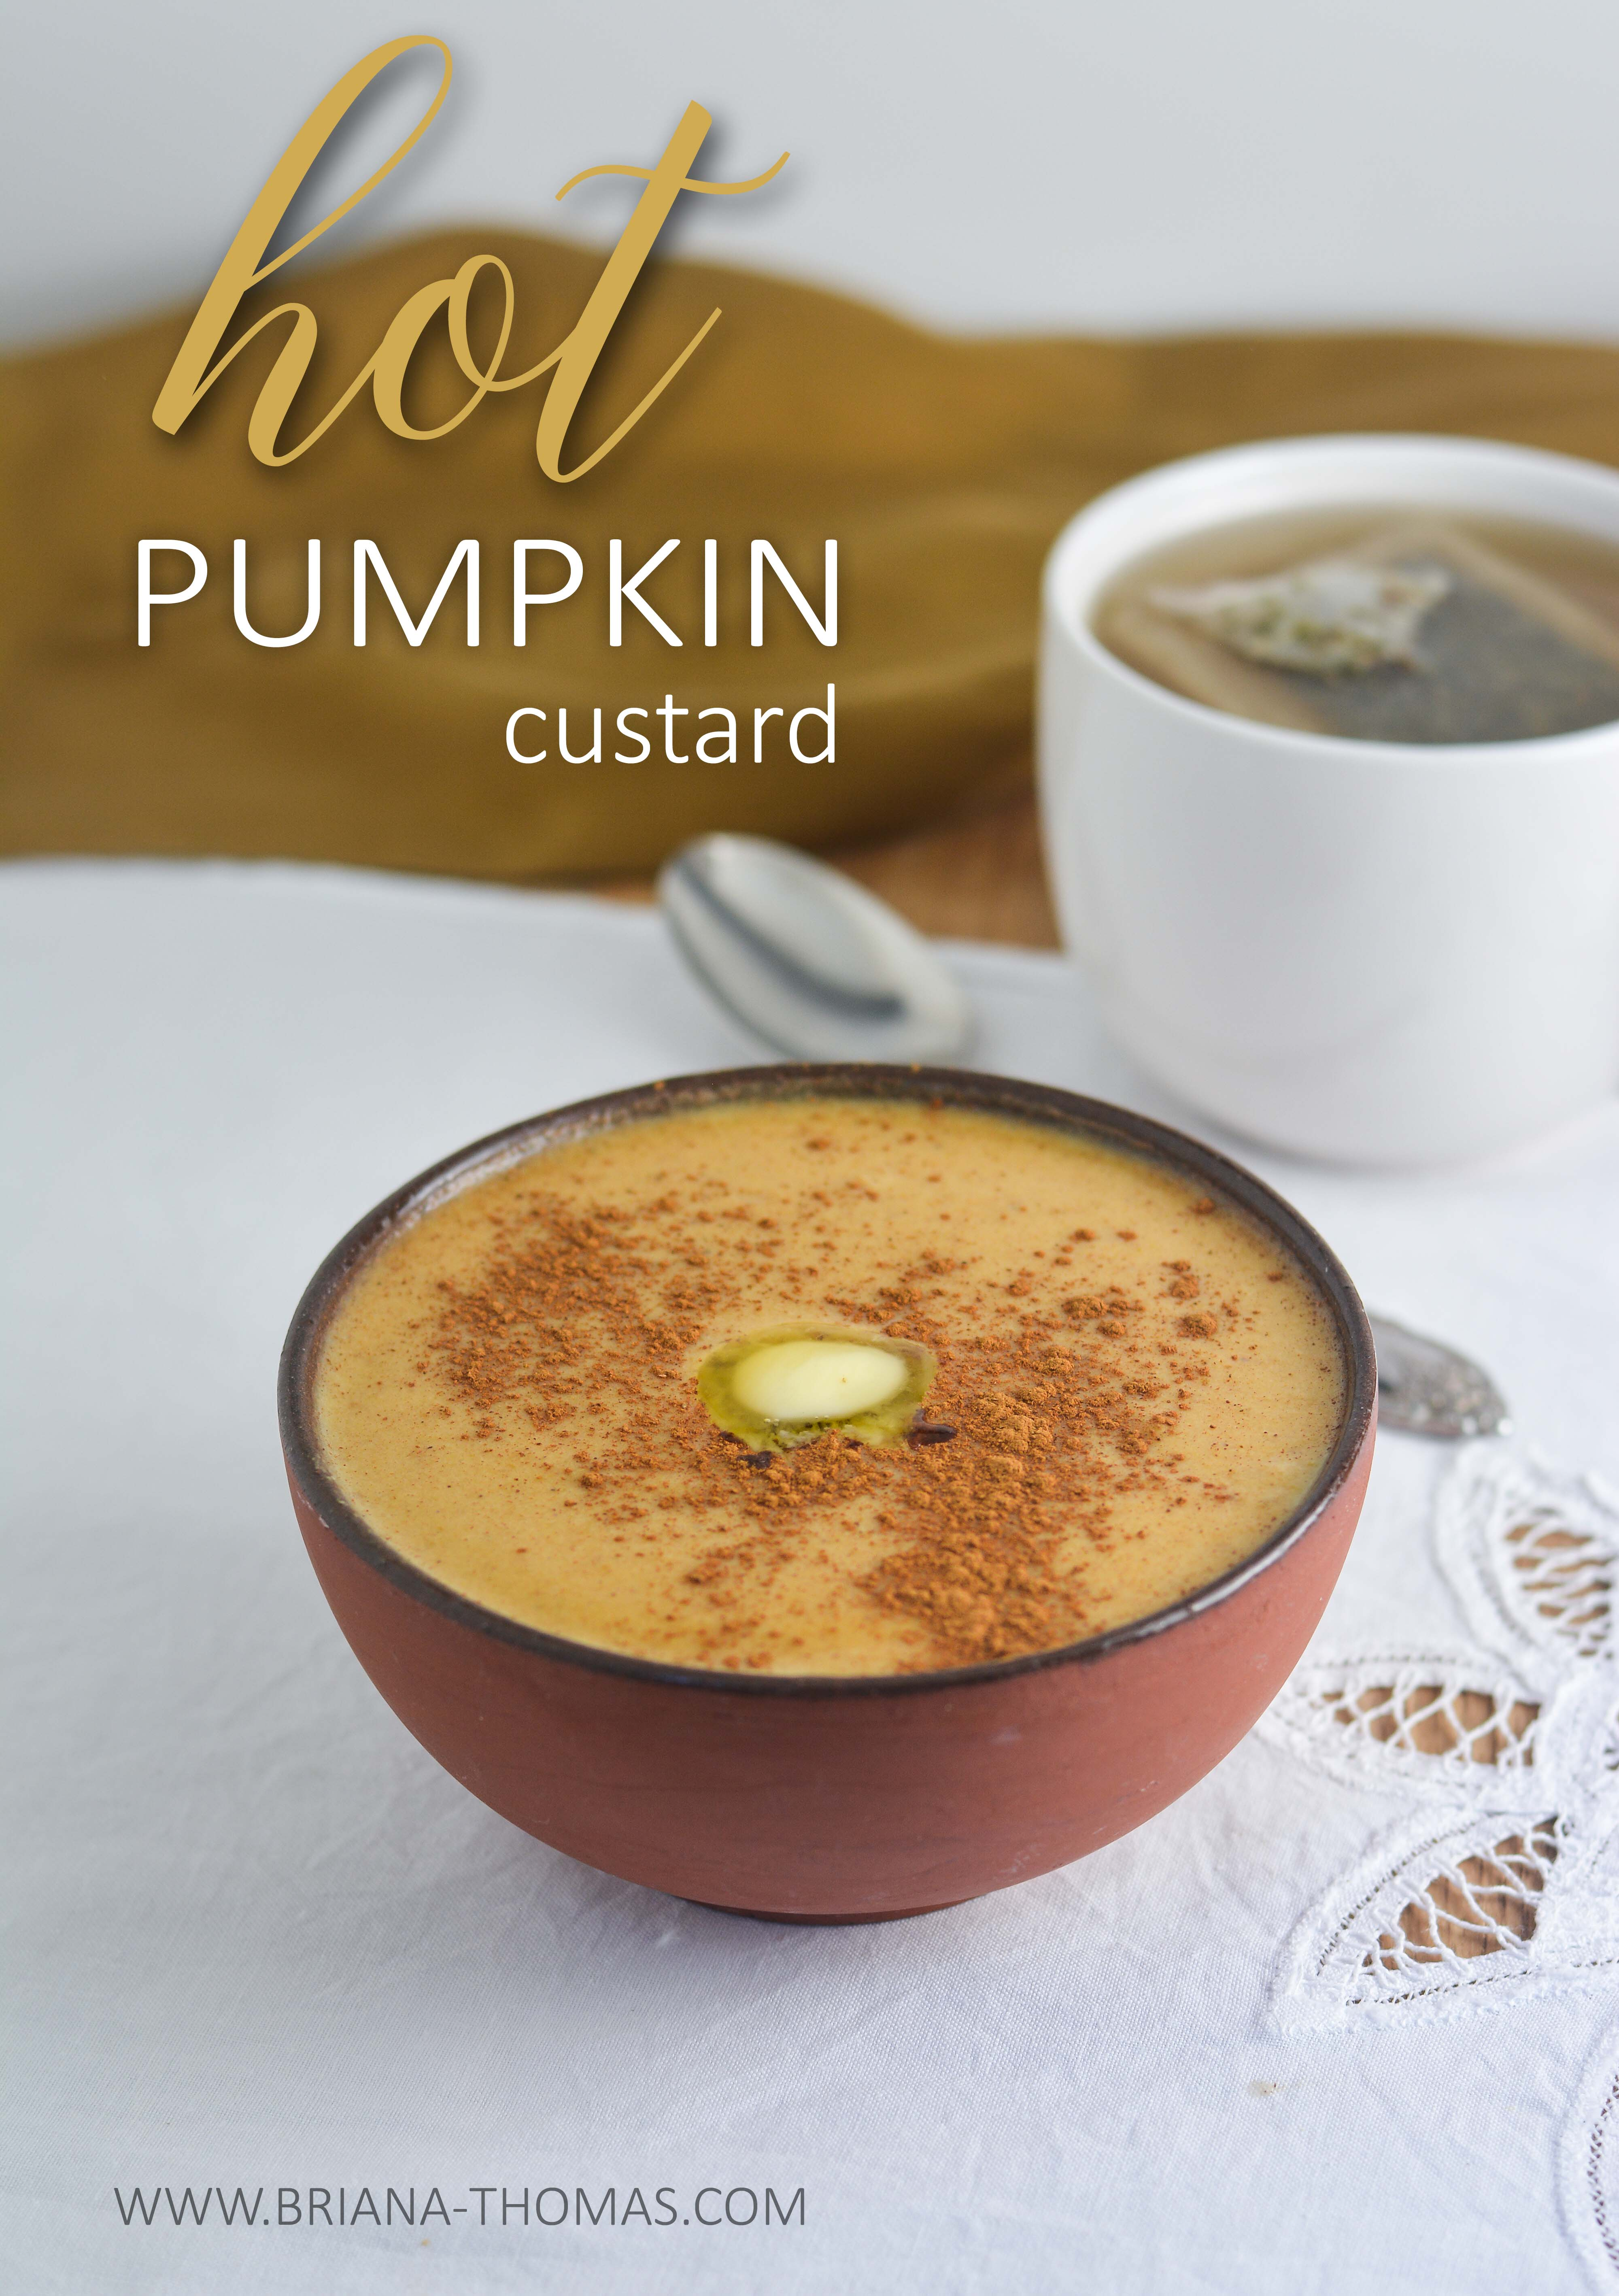 This Hot Pumpkin Custard for one is the epitome of fall comfort food! I love it for breakfast. THM:S, low carb, sugar free, gluten/dairy/nut free